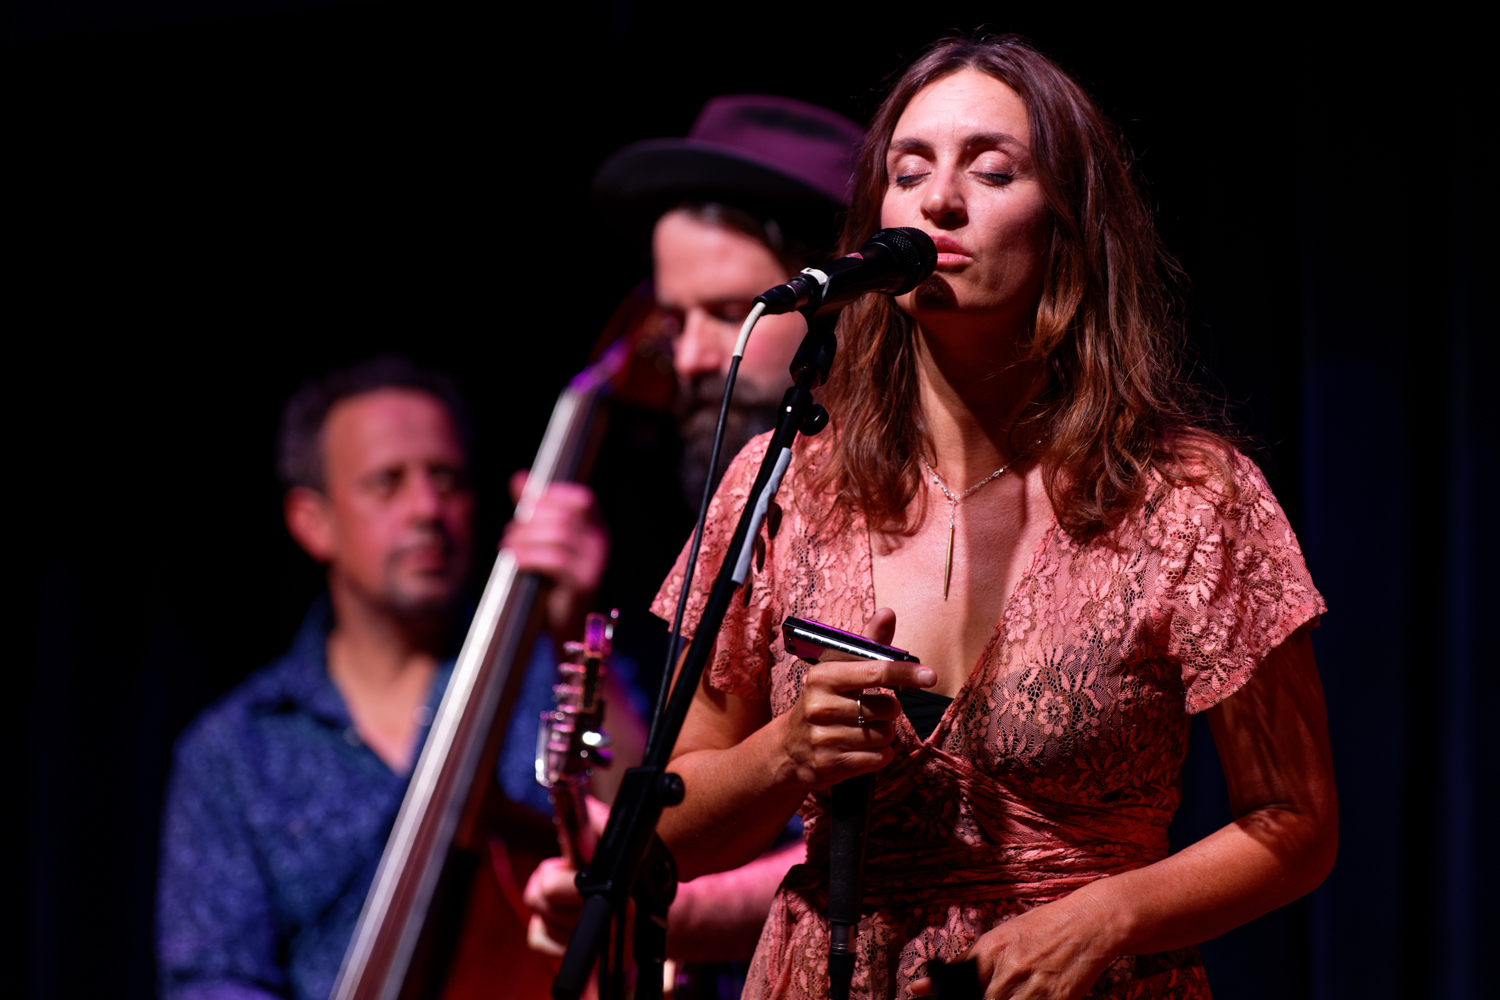 20190801 063 Freight & Salvage - The Waifs by Jon Bauer.jpg